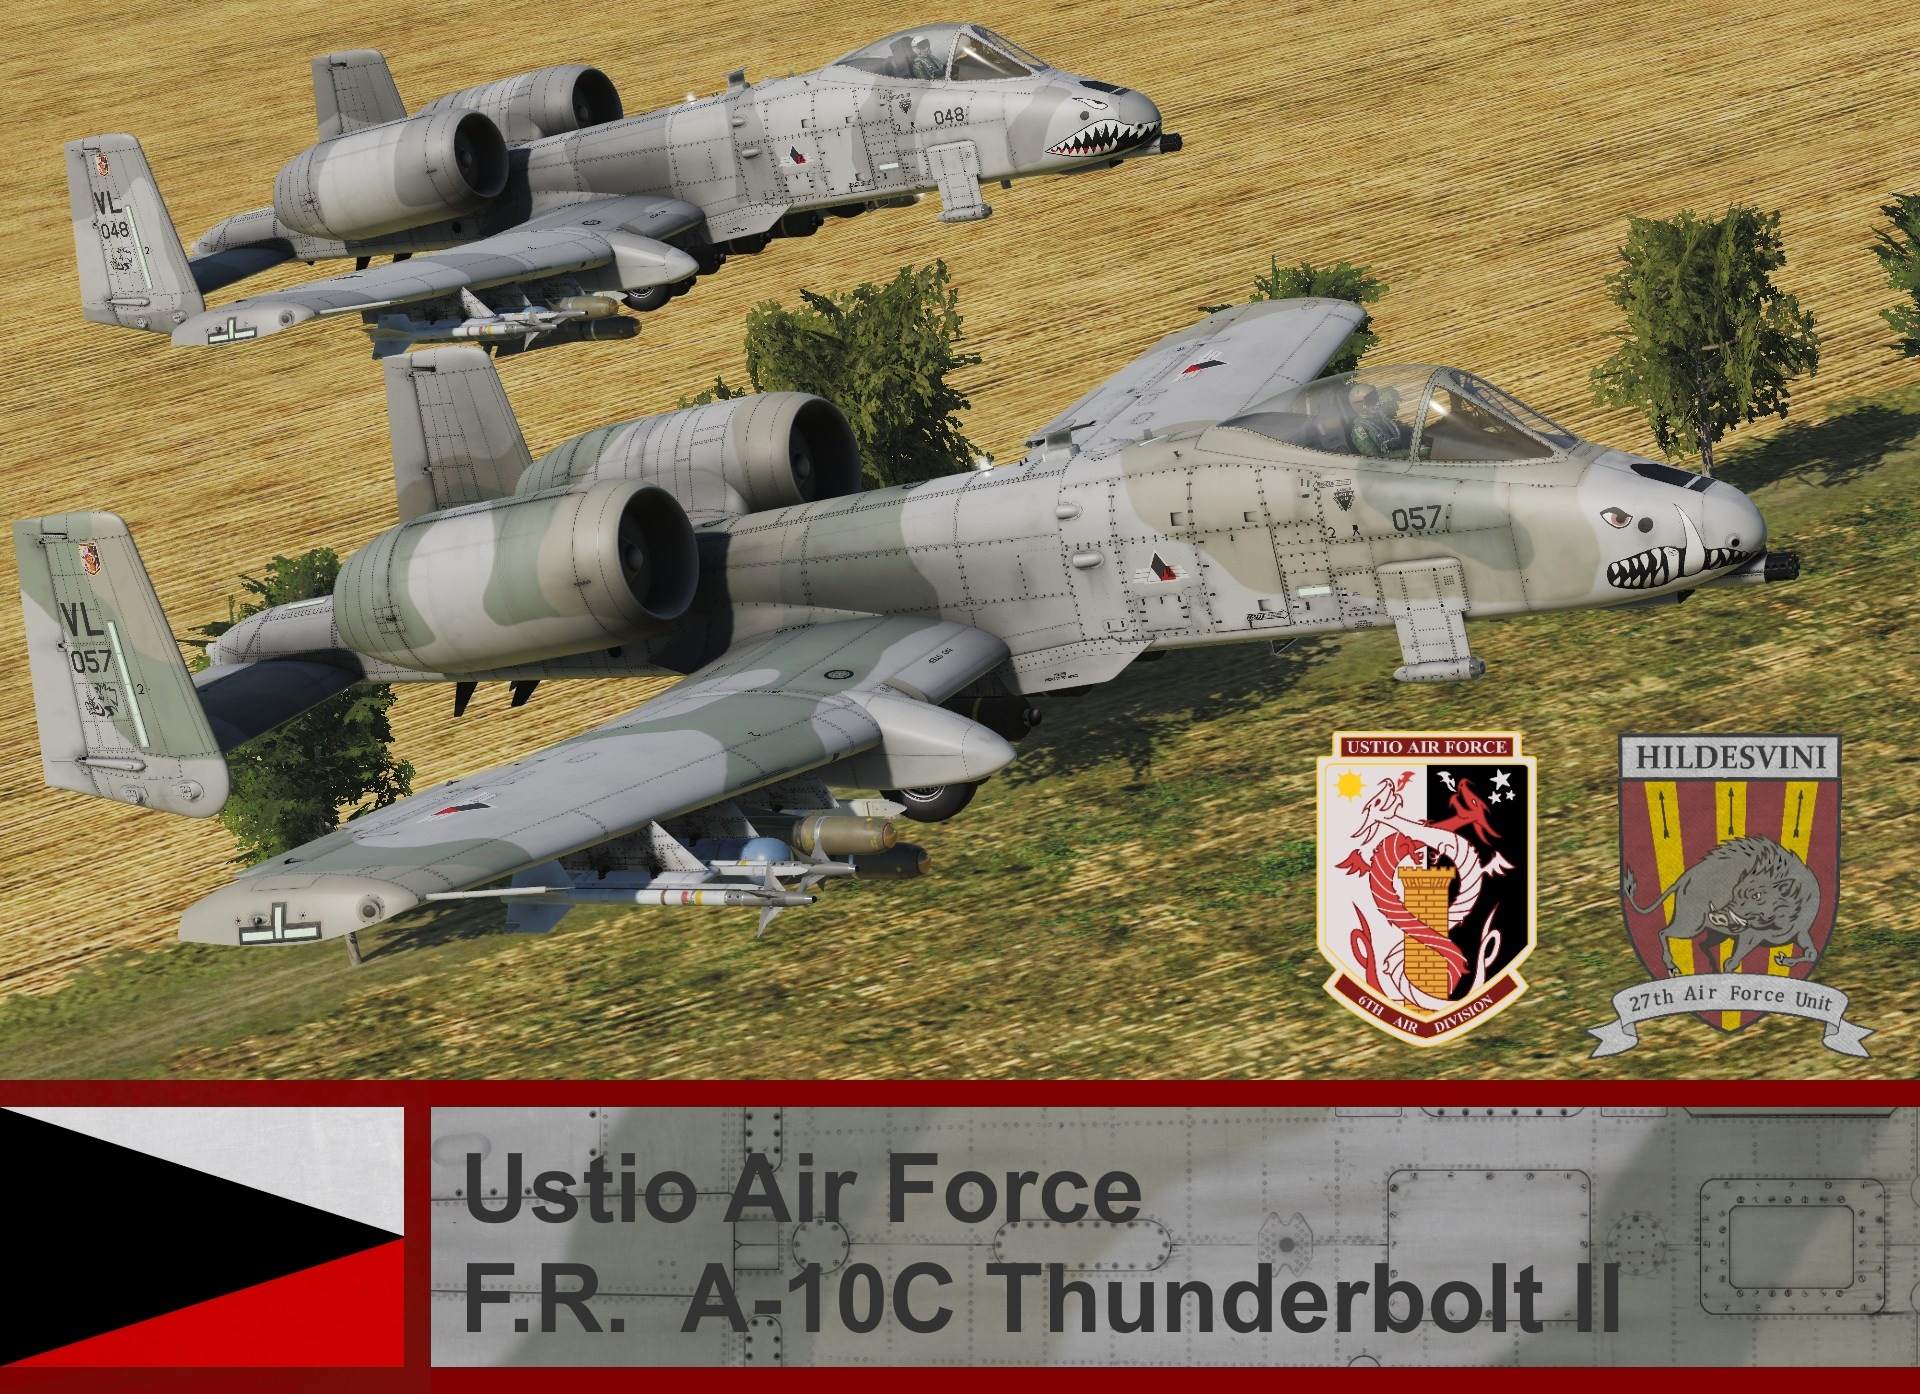 Ustio Air Force A-10C - Ace Combat Zero (27th AFU)